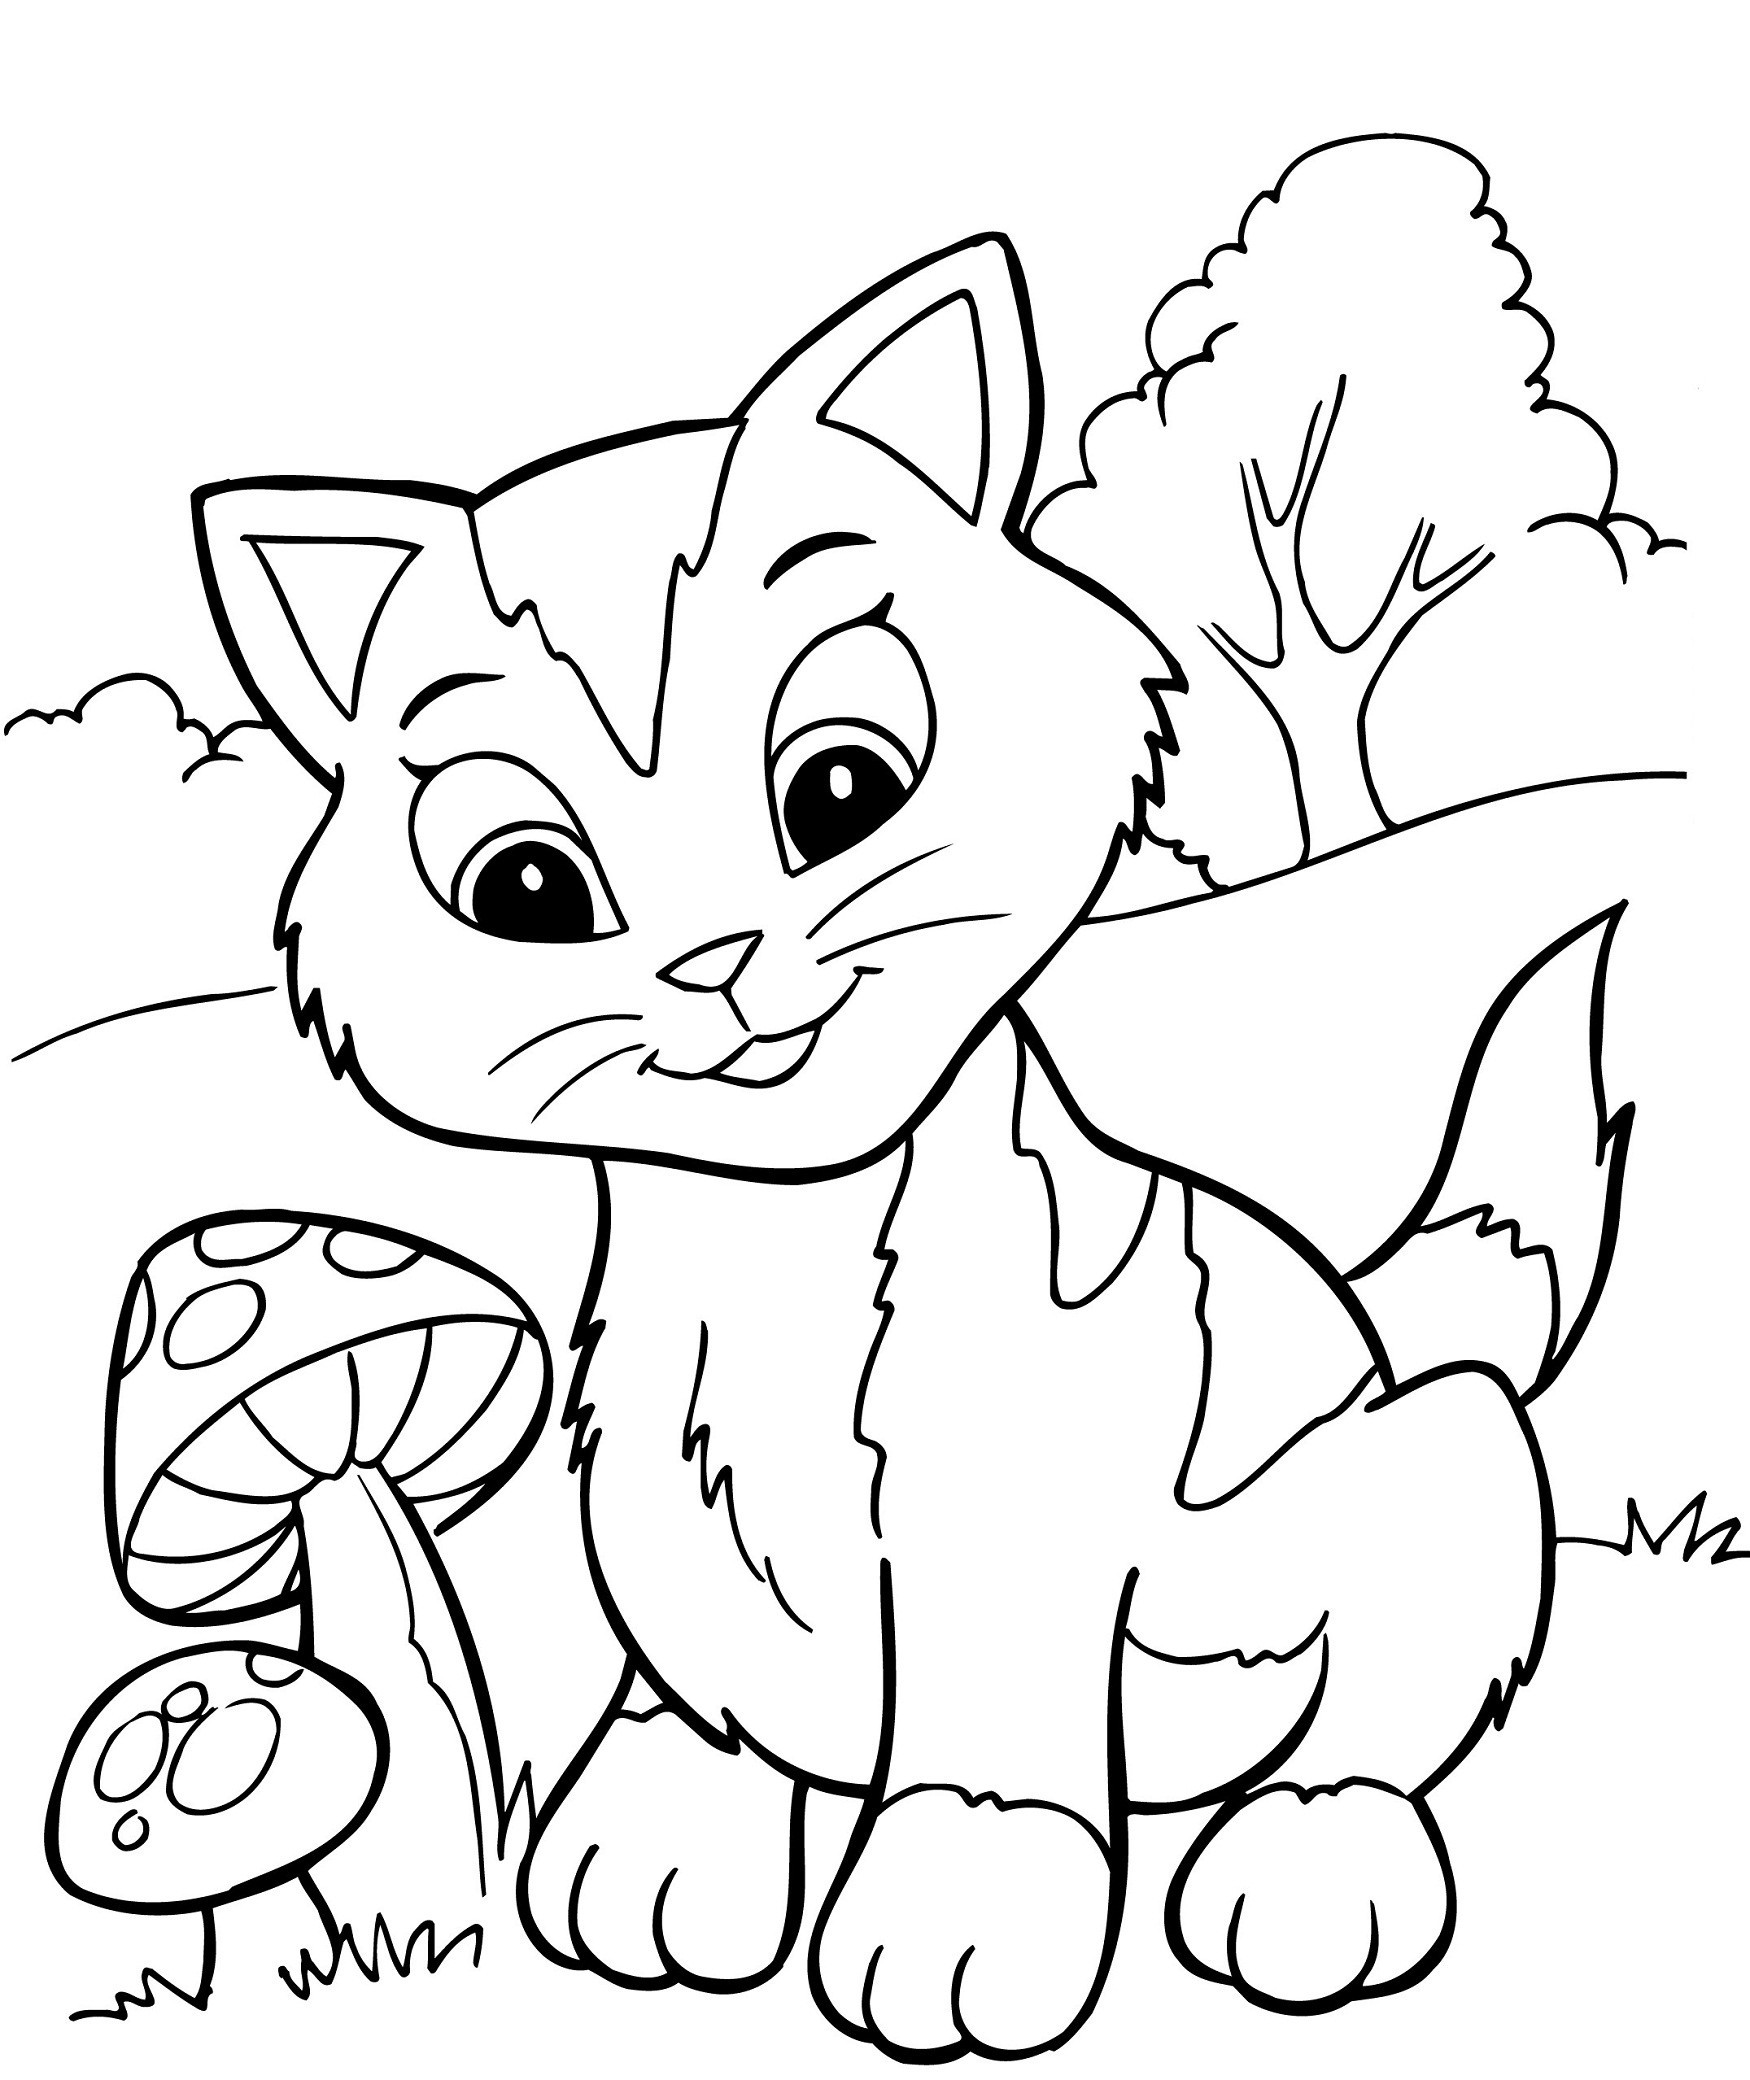 1750x2080 Coloring Kitten Pages Luxury Coloring Pages For Puppies Copy Puppy